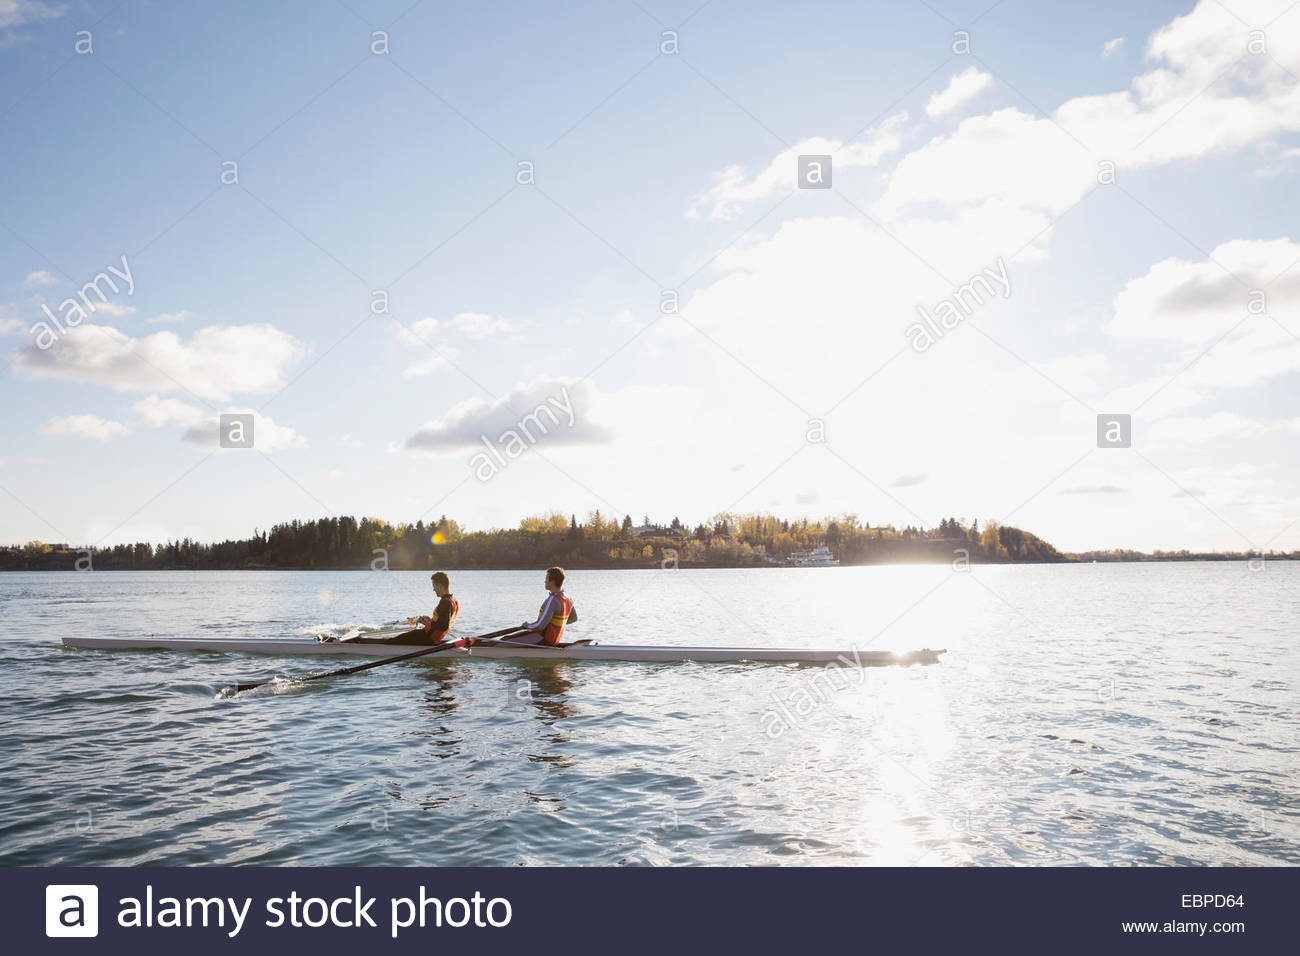 Rowing team in scull on sunny river - Stock Image